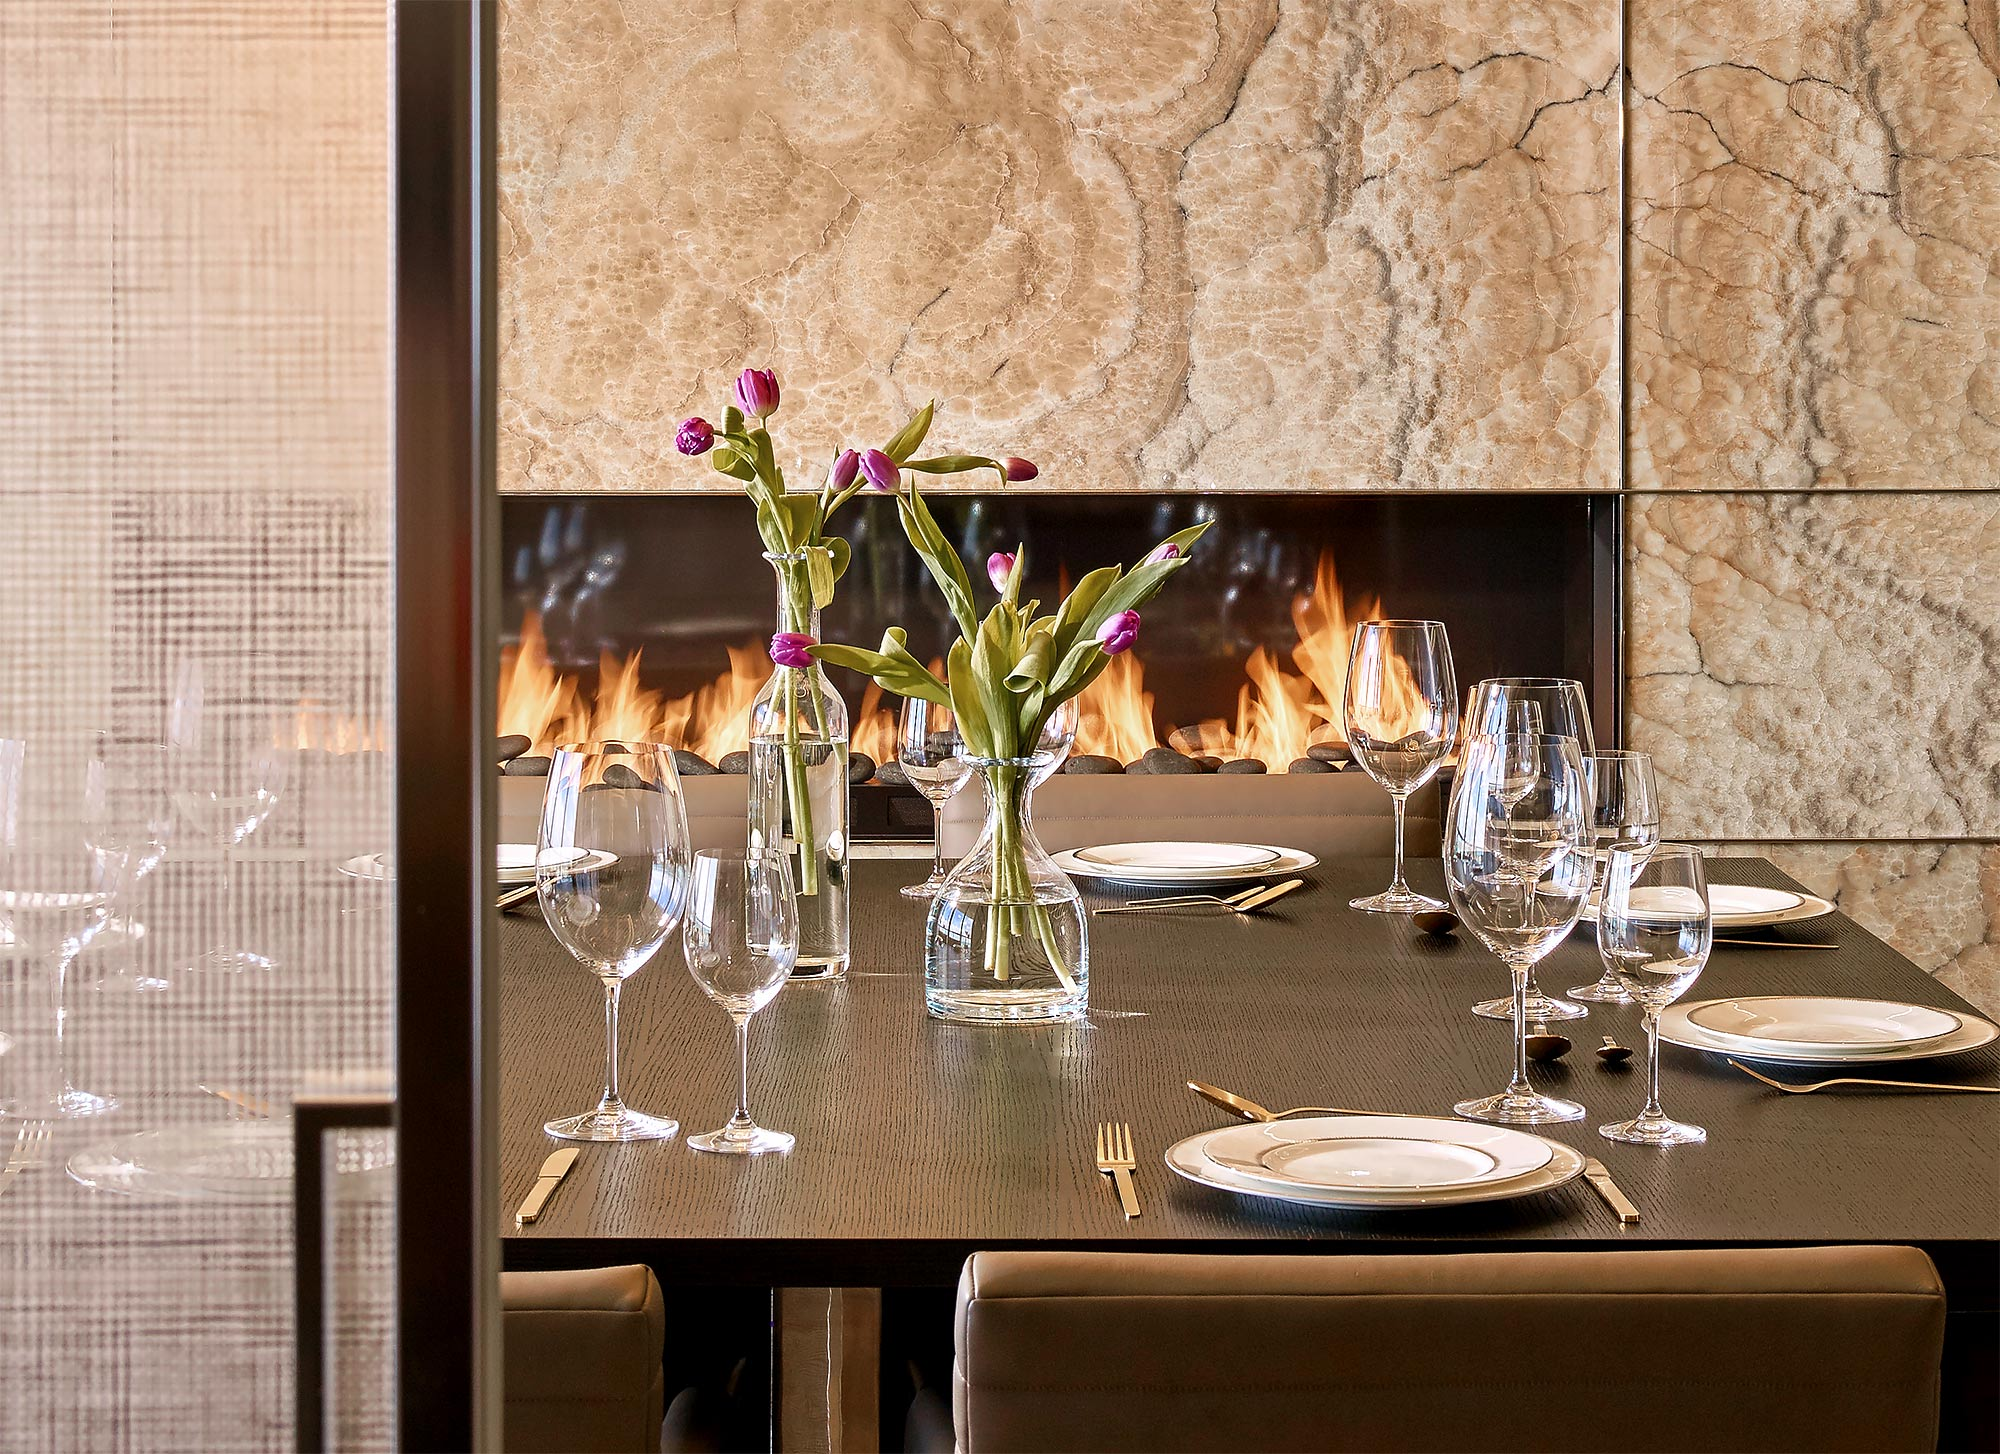 St-Regis-Bal-Harbour-Dining-Detail-Onyx-Wall-Fireplace